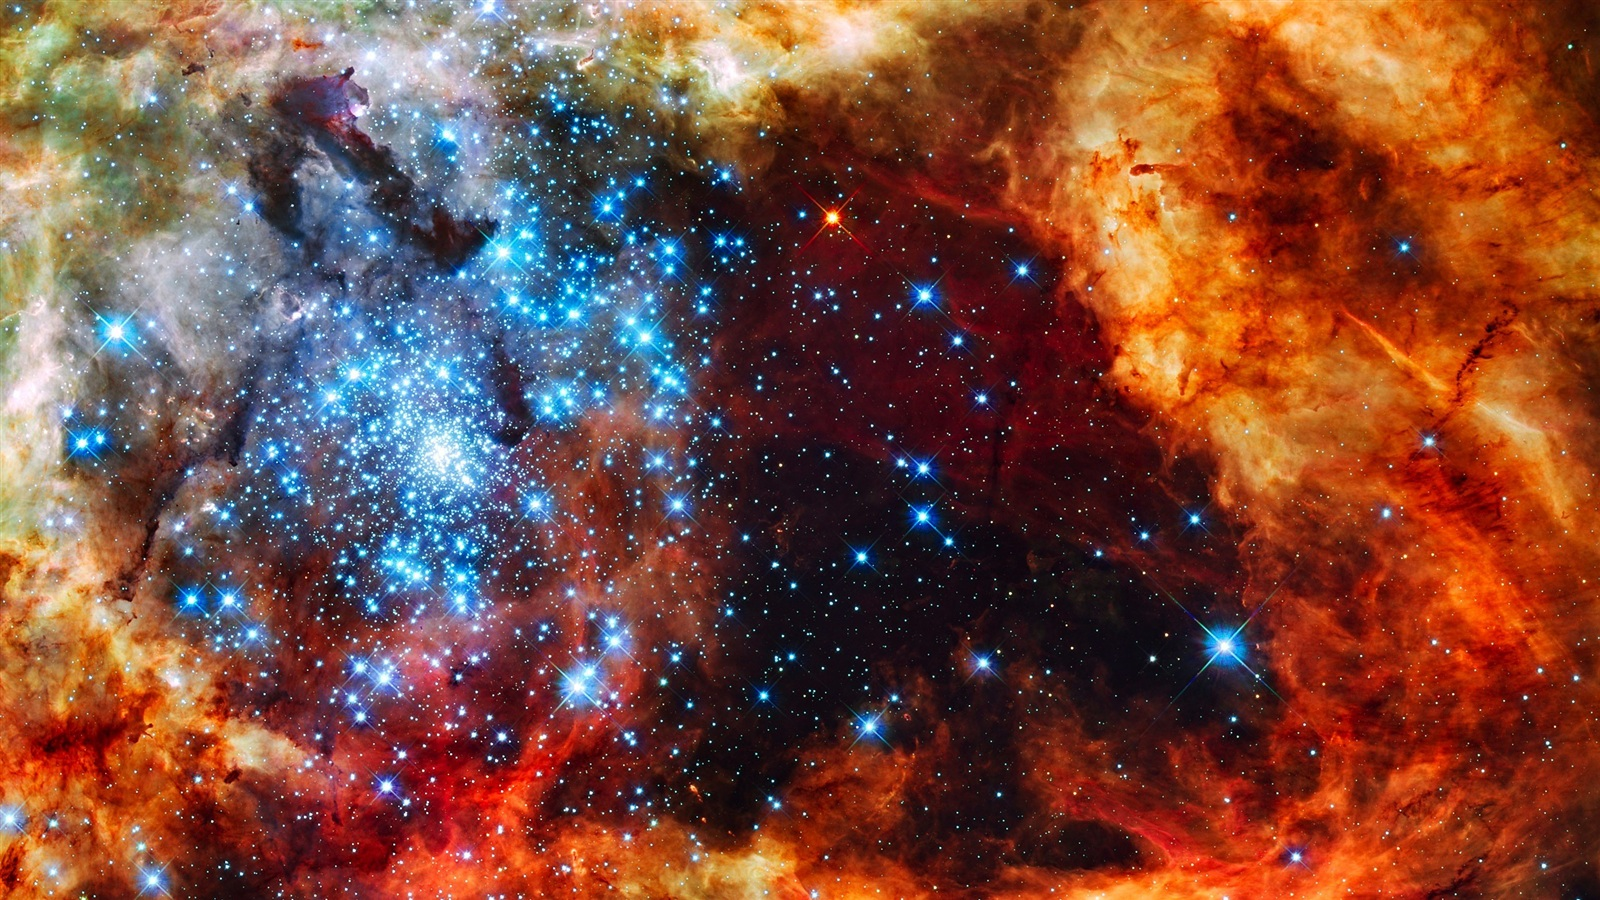 Wallpaper starry space 2560x1440 qhd picture image - Space wallpaper 1600x900 ...